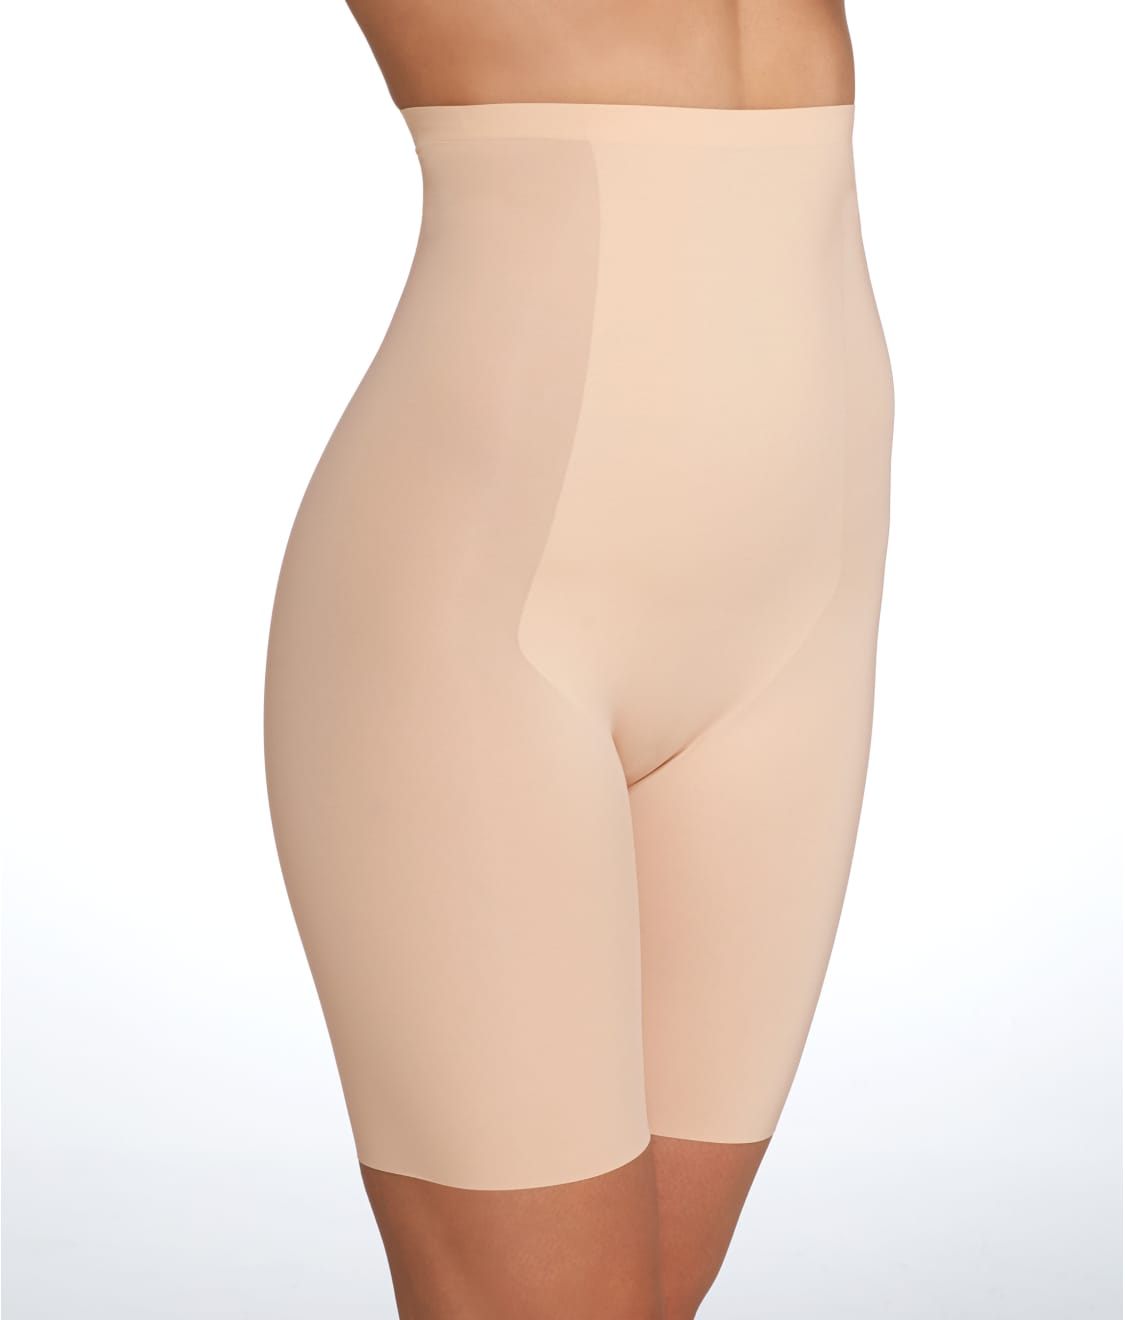 436ded596ae59 SPANX Trust Your Thinstincts High-Waist Shorts